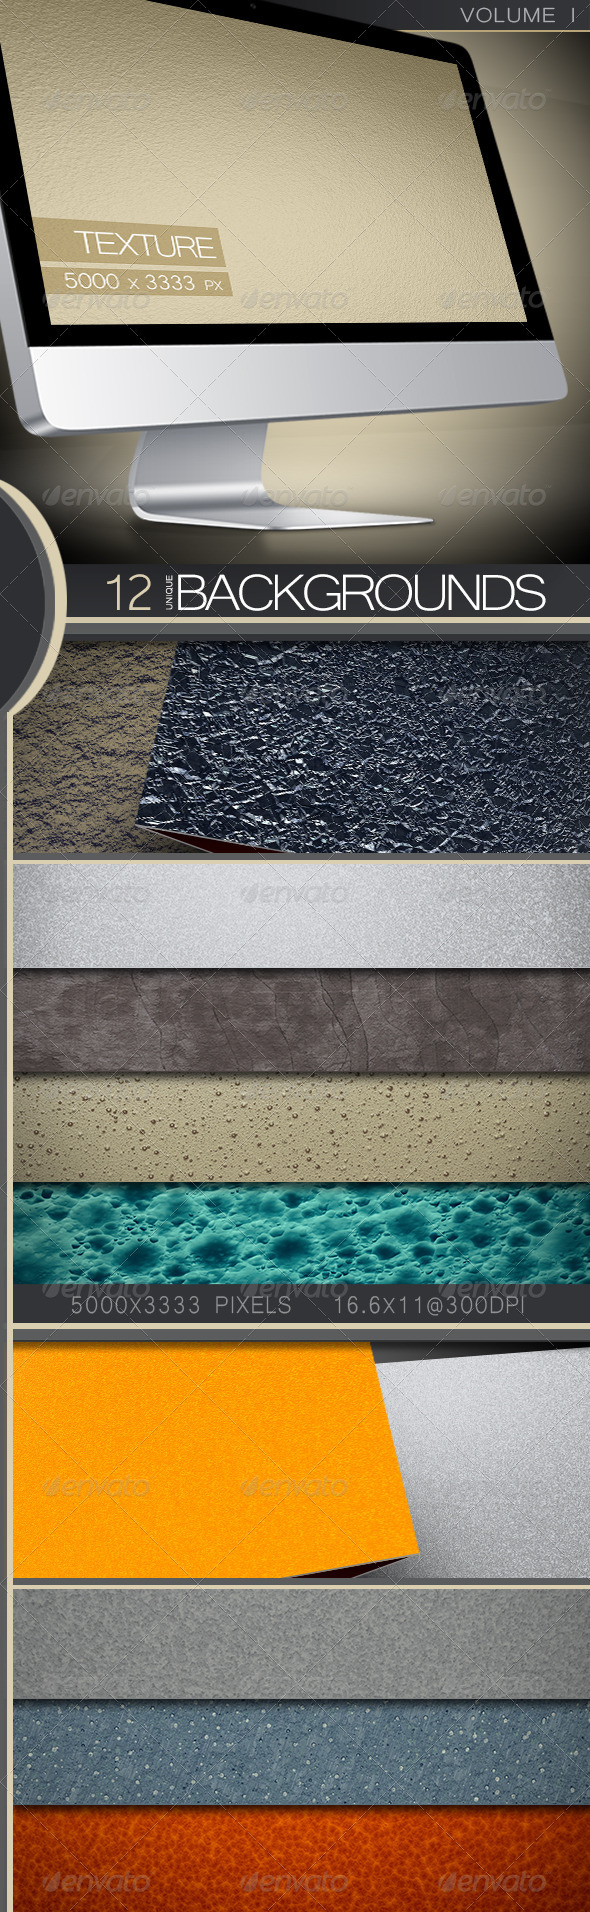 GraphicRiver Texture Backgrounds Volume 1 5443400